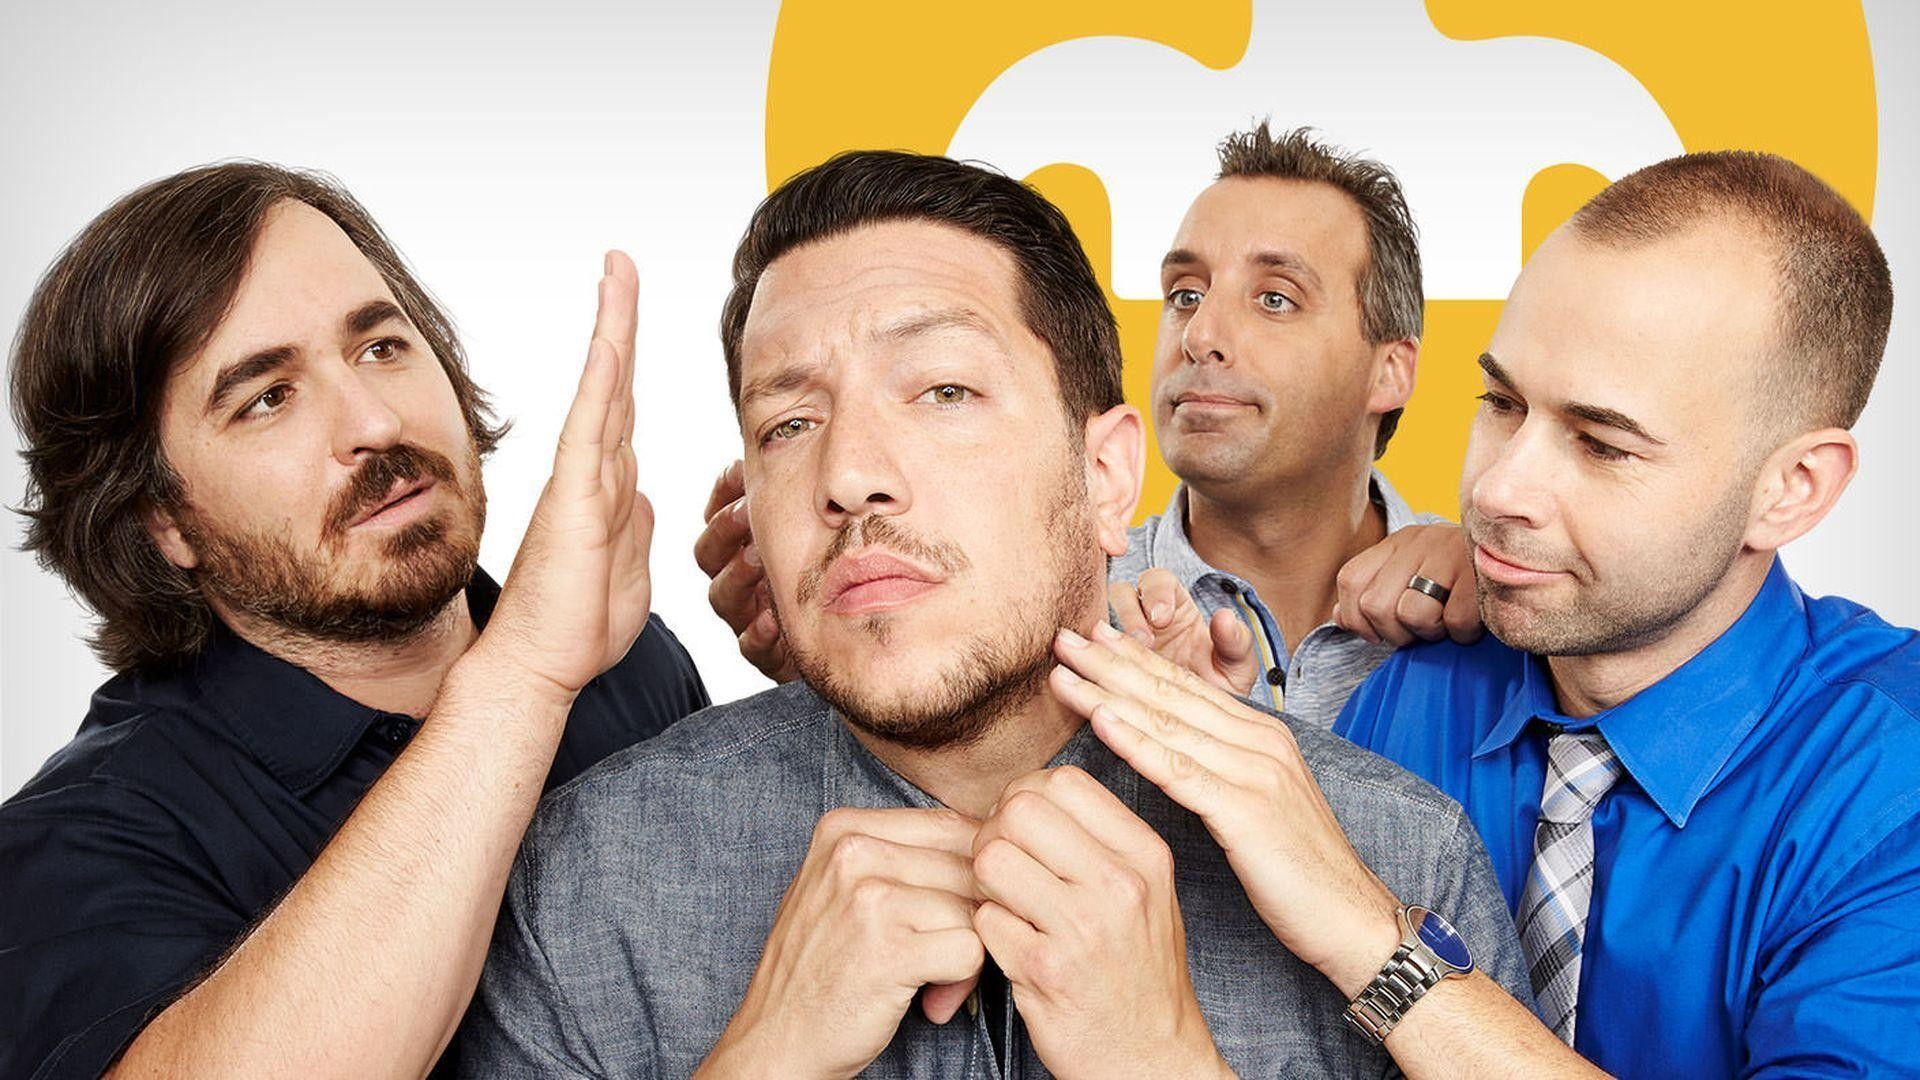 1920x1080 Could You Be One of the Impractical Jokers? - Zoo